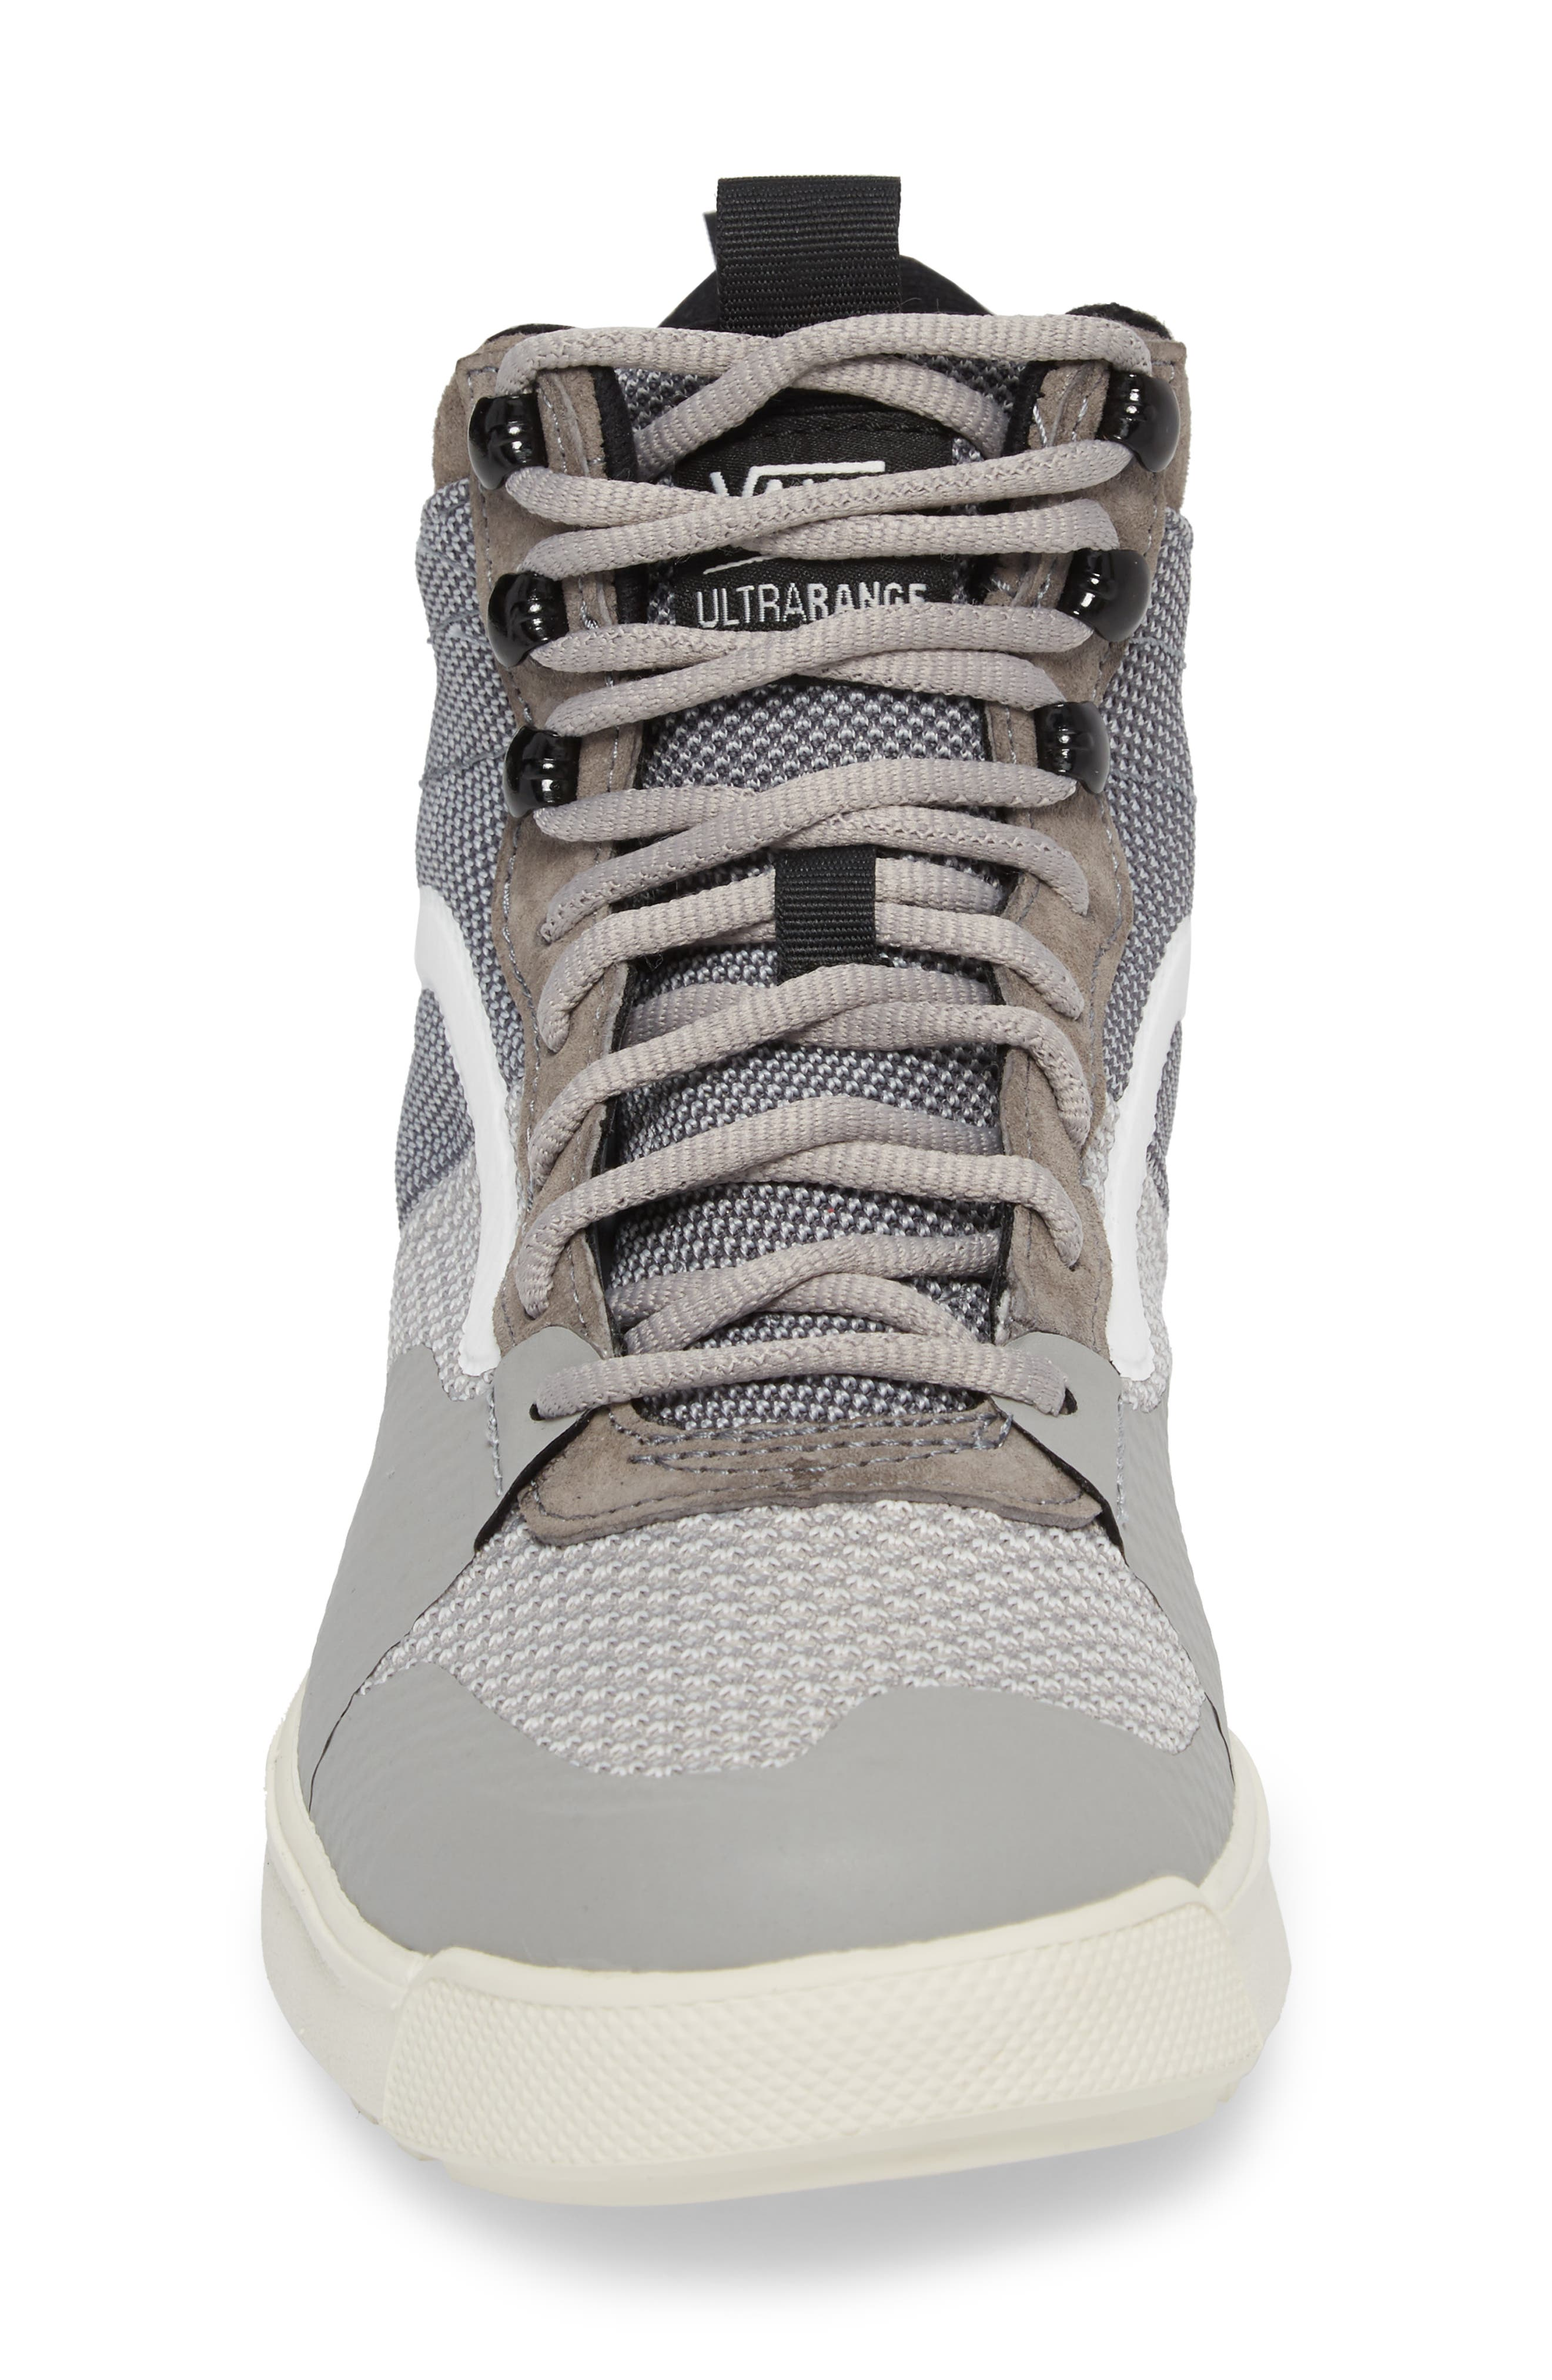 UltraRange DX High Top Sneaker,                             Alternate thumbnail 4, color,                             Pewter/ Drizzle